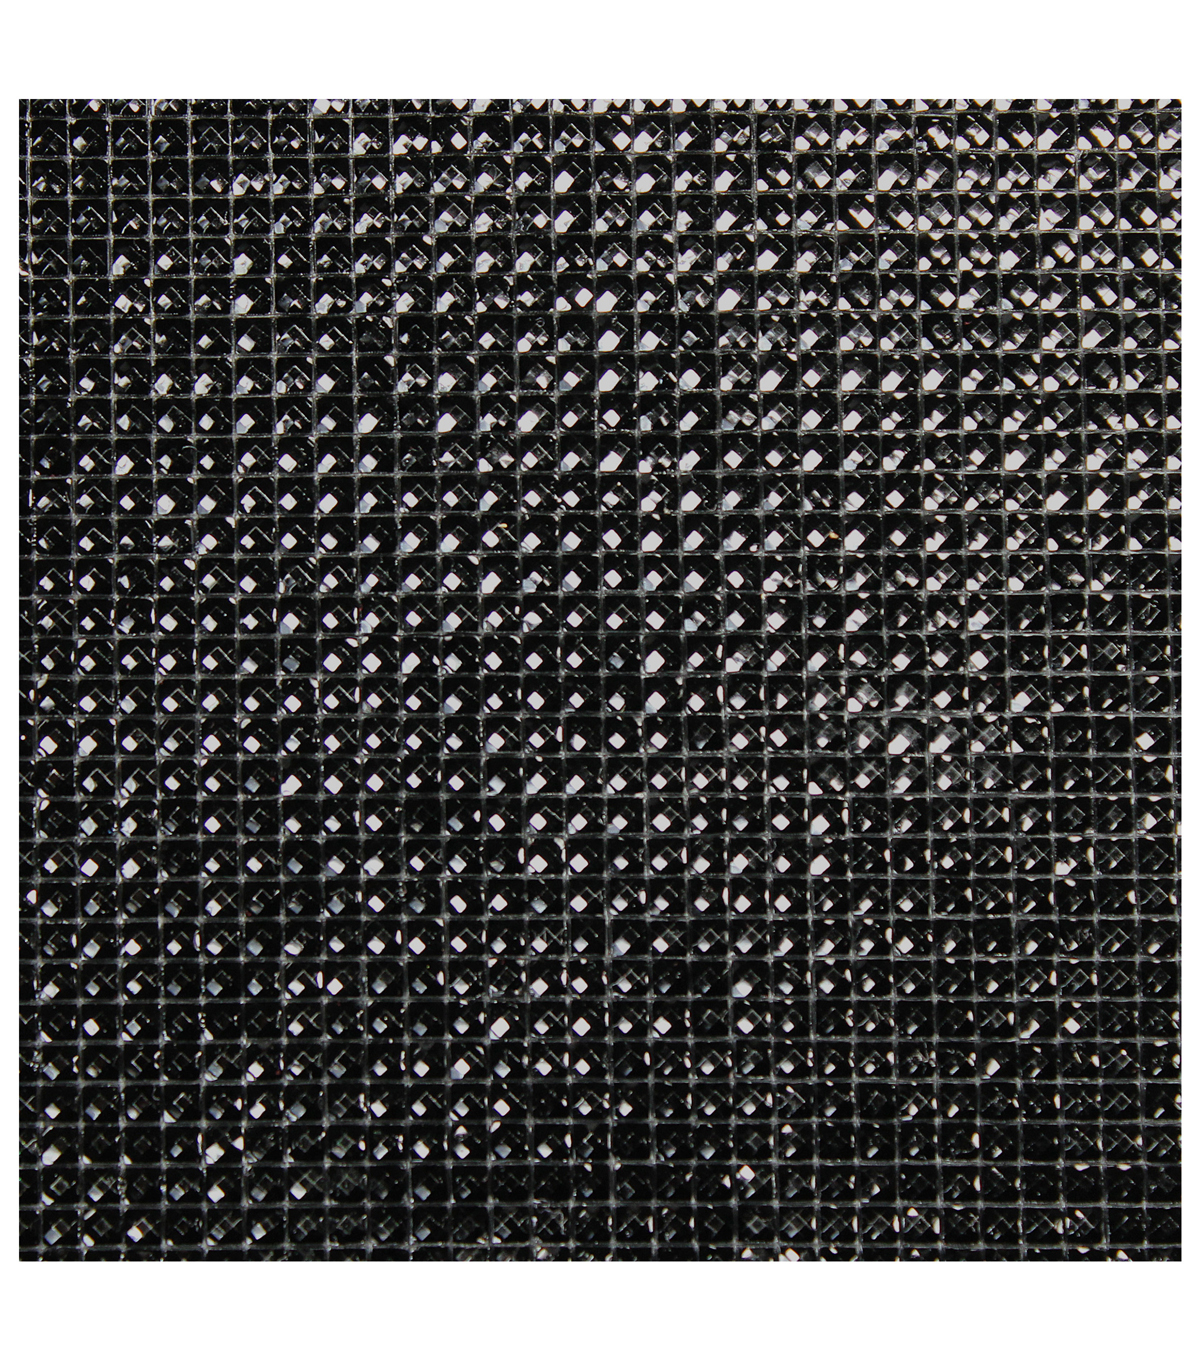 Dazzling  Resin Jewel Self Adhesive Sheet-Black